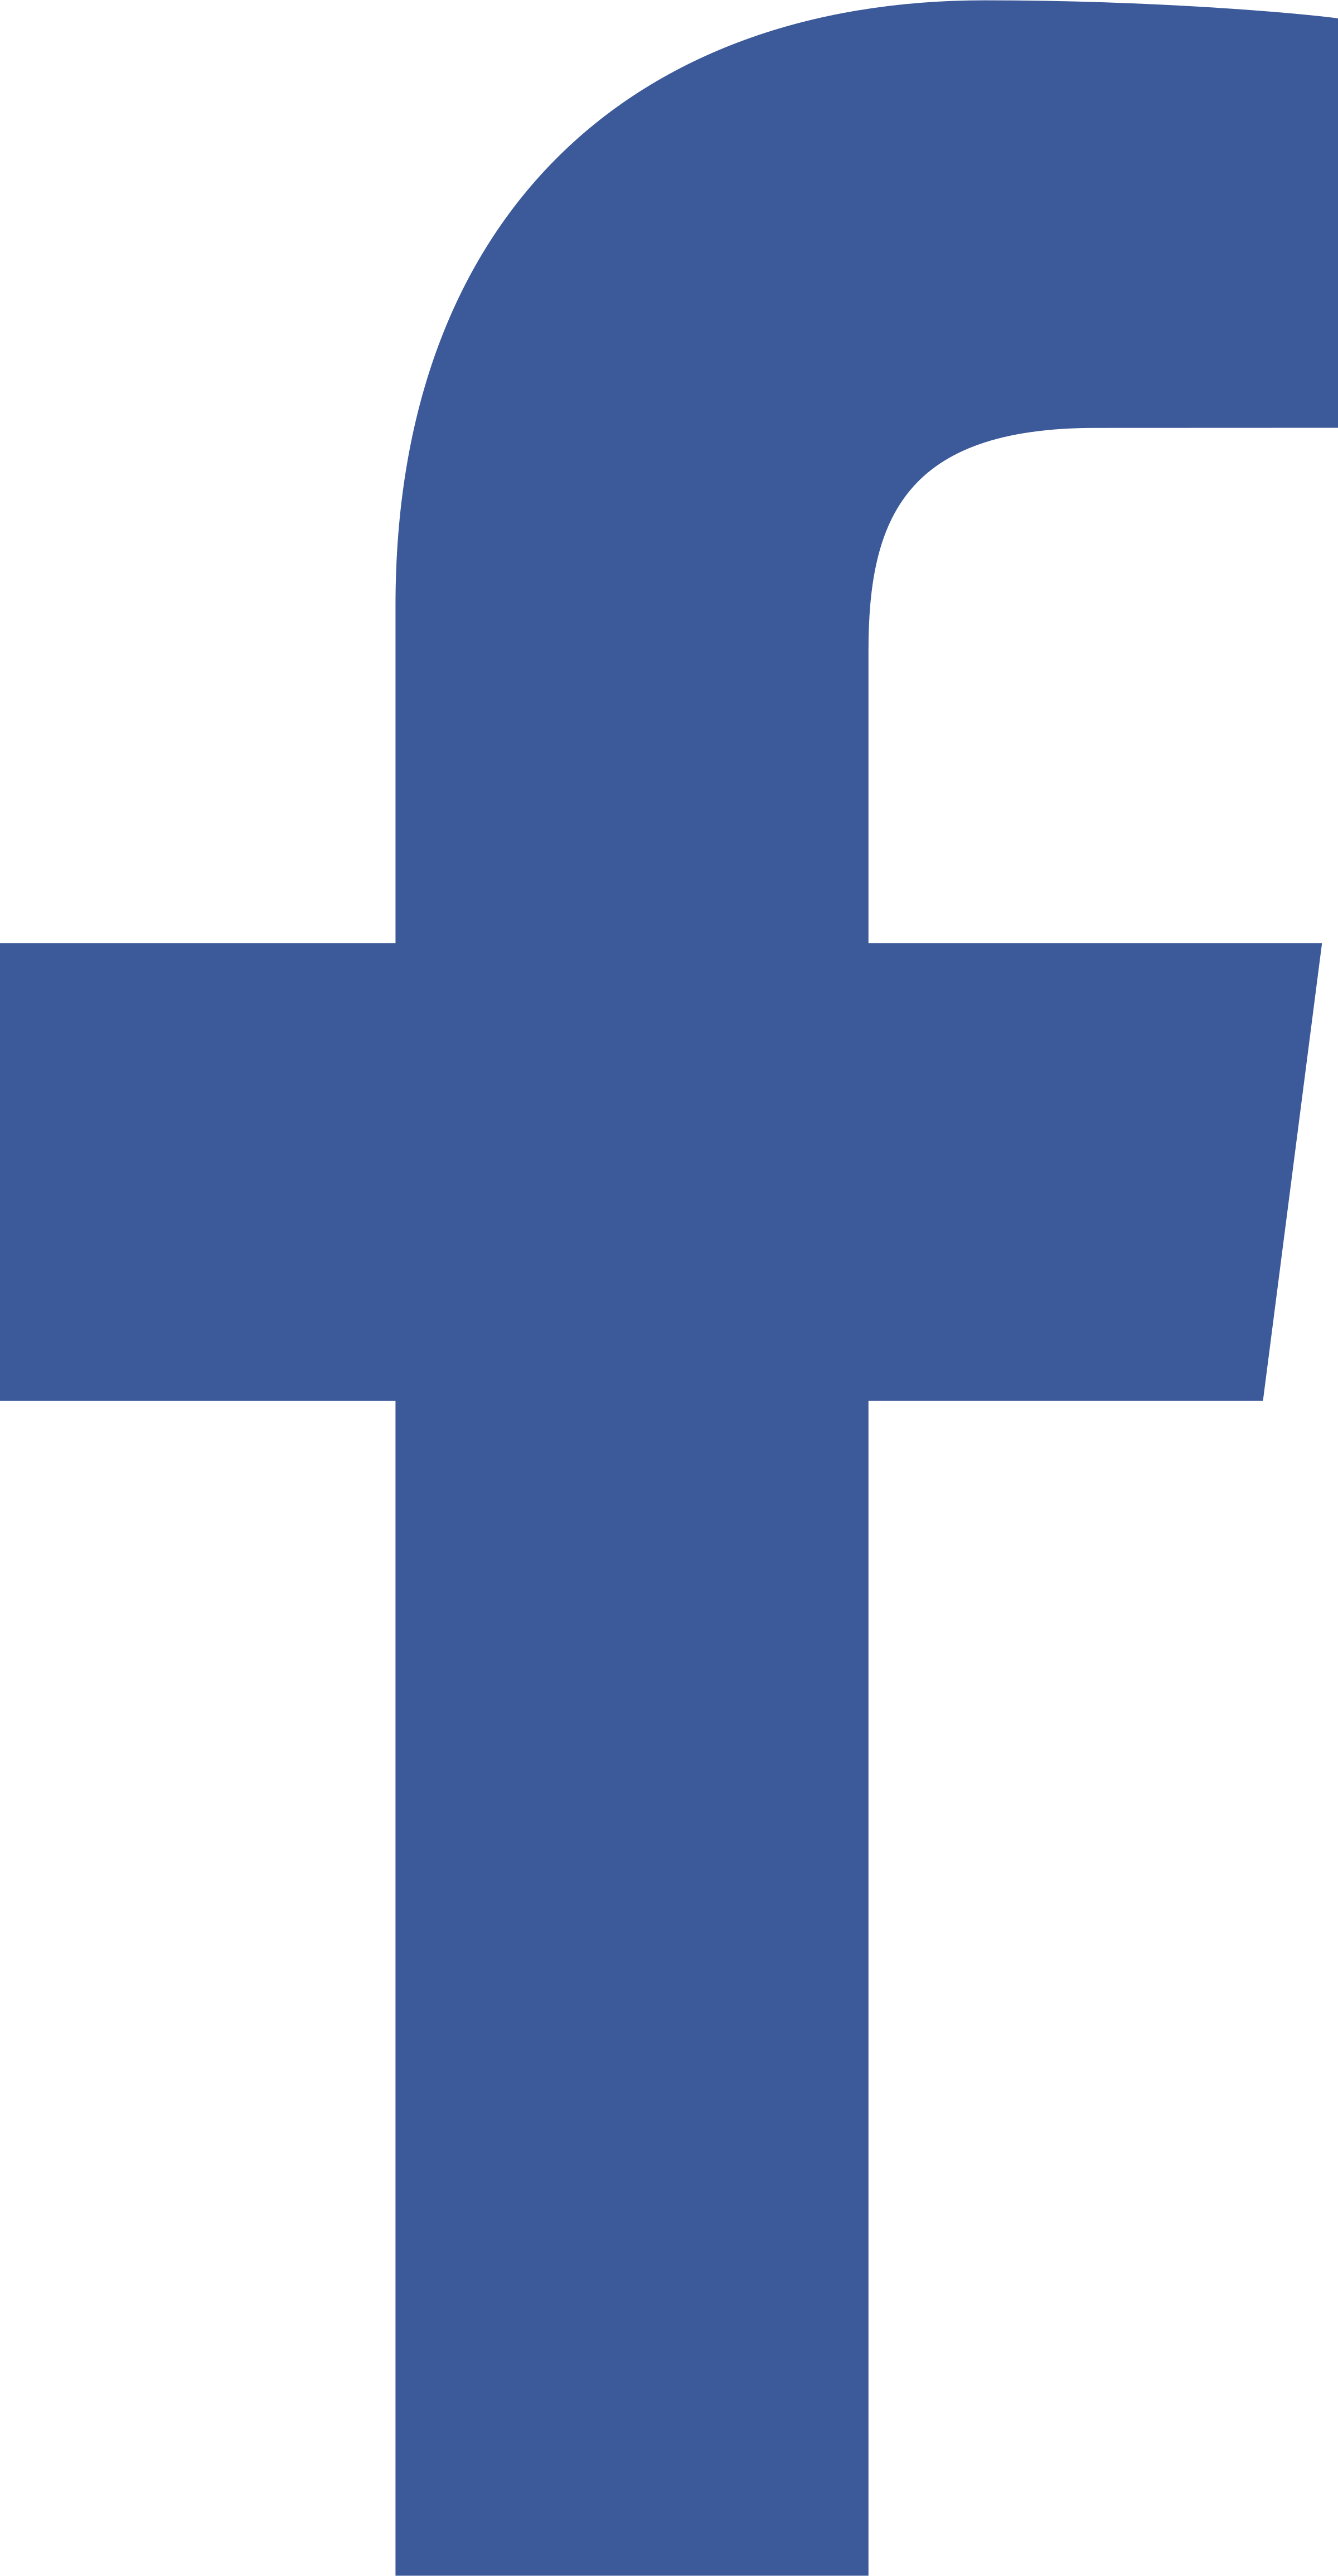 Big Blue Facebook Brand Transparent Logo #32214